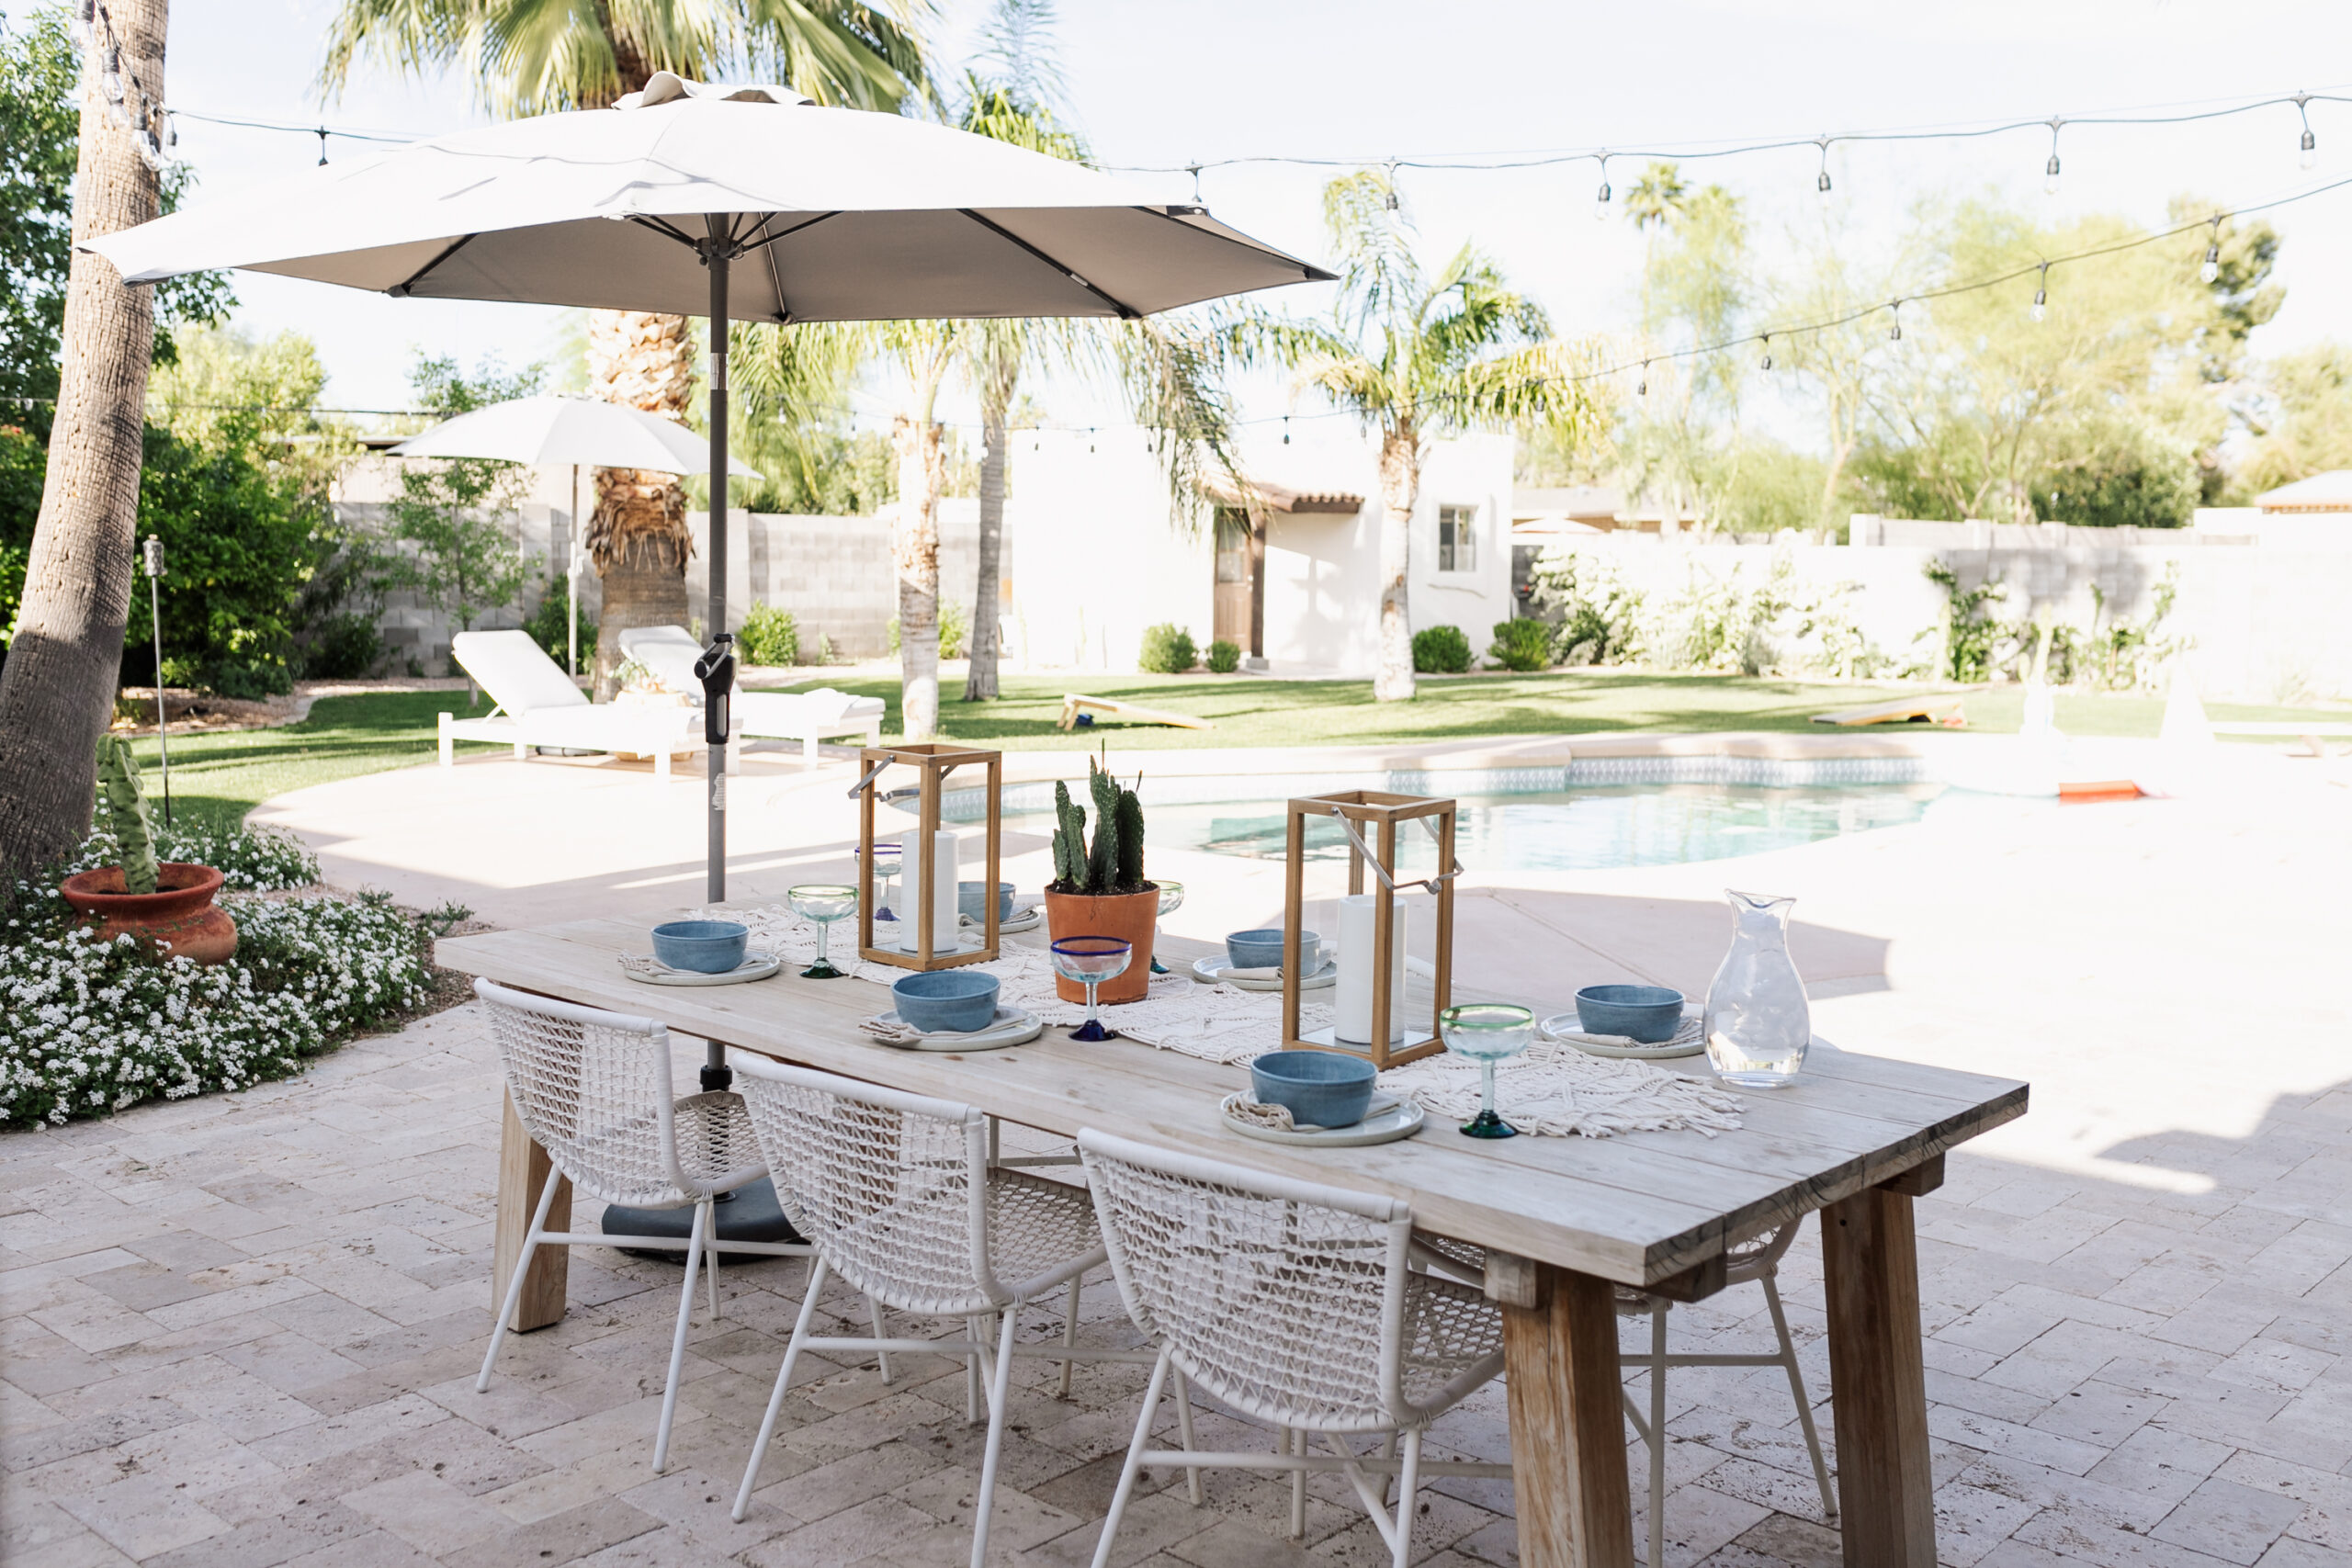 all set up for some outdoor dining in our backyard #thelovedesignedlife #theldlhome #outdoordining #ouraticle